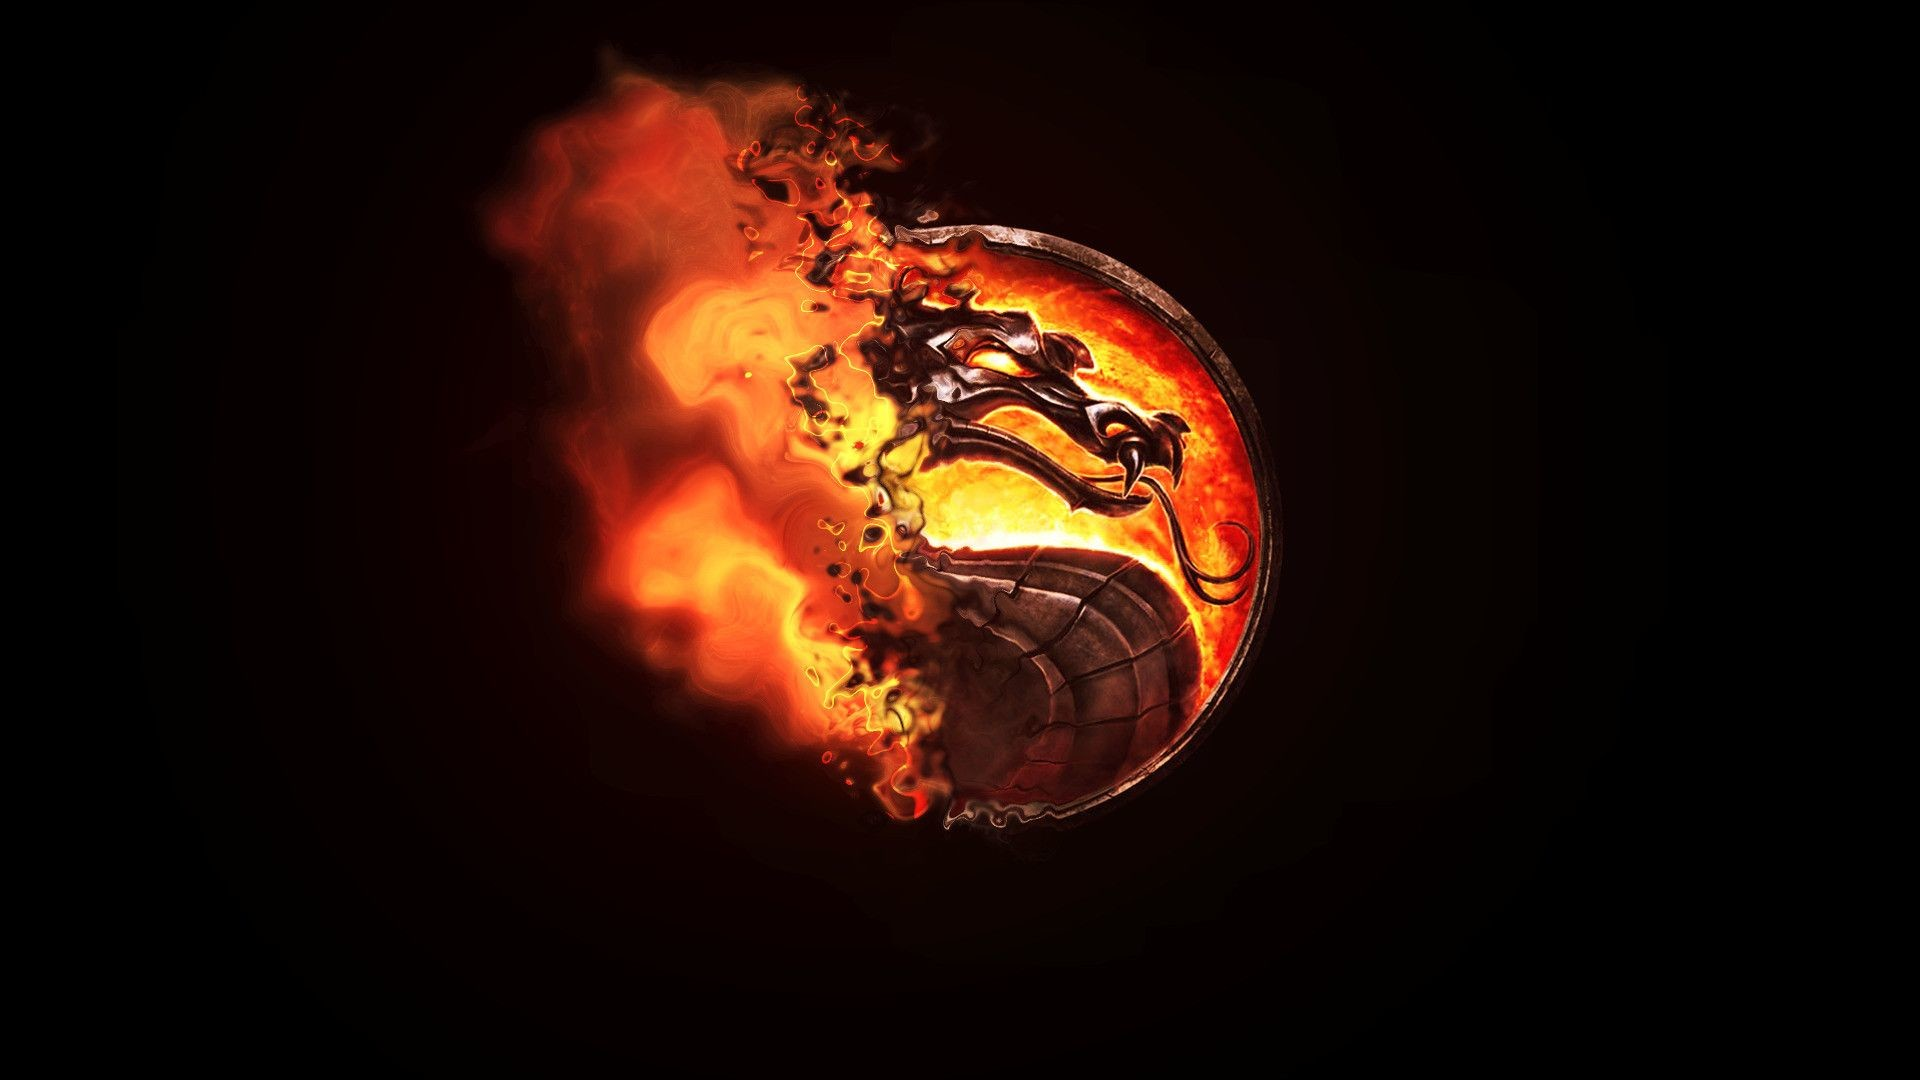 1920x1080 Mortal Kombat, Dragon, Burning Wallpapers HD / Desktop and Mobile  Backgrounds